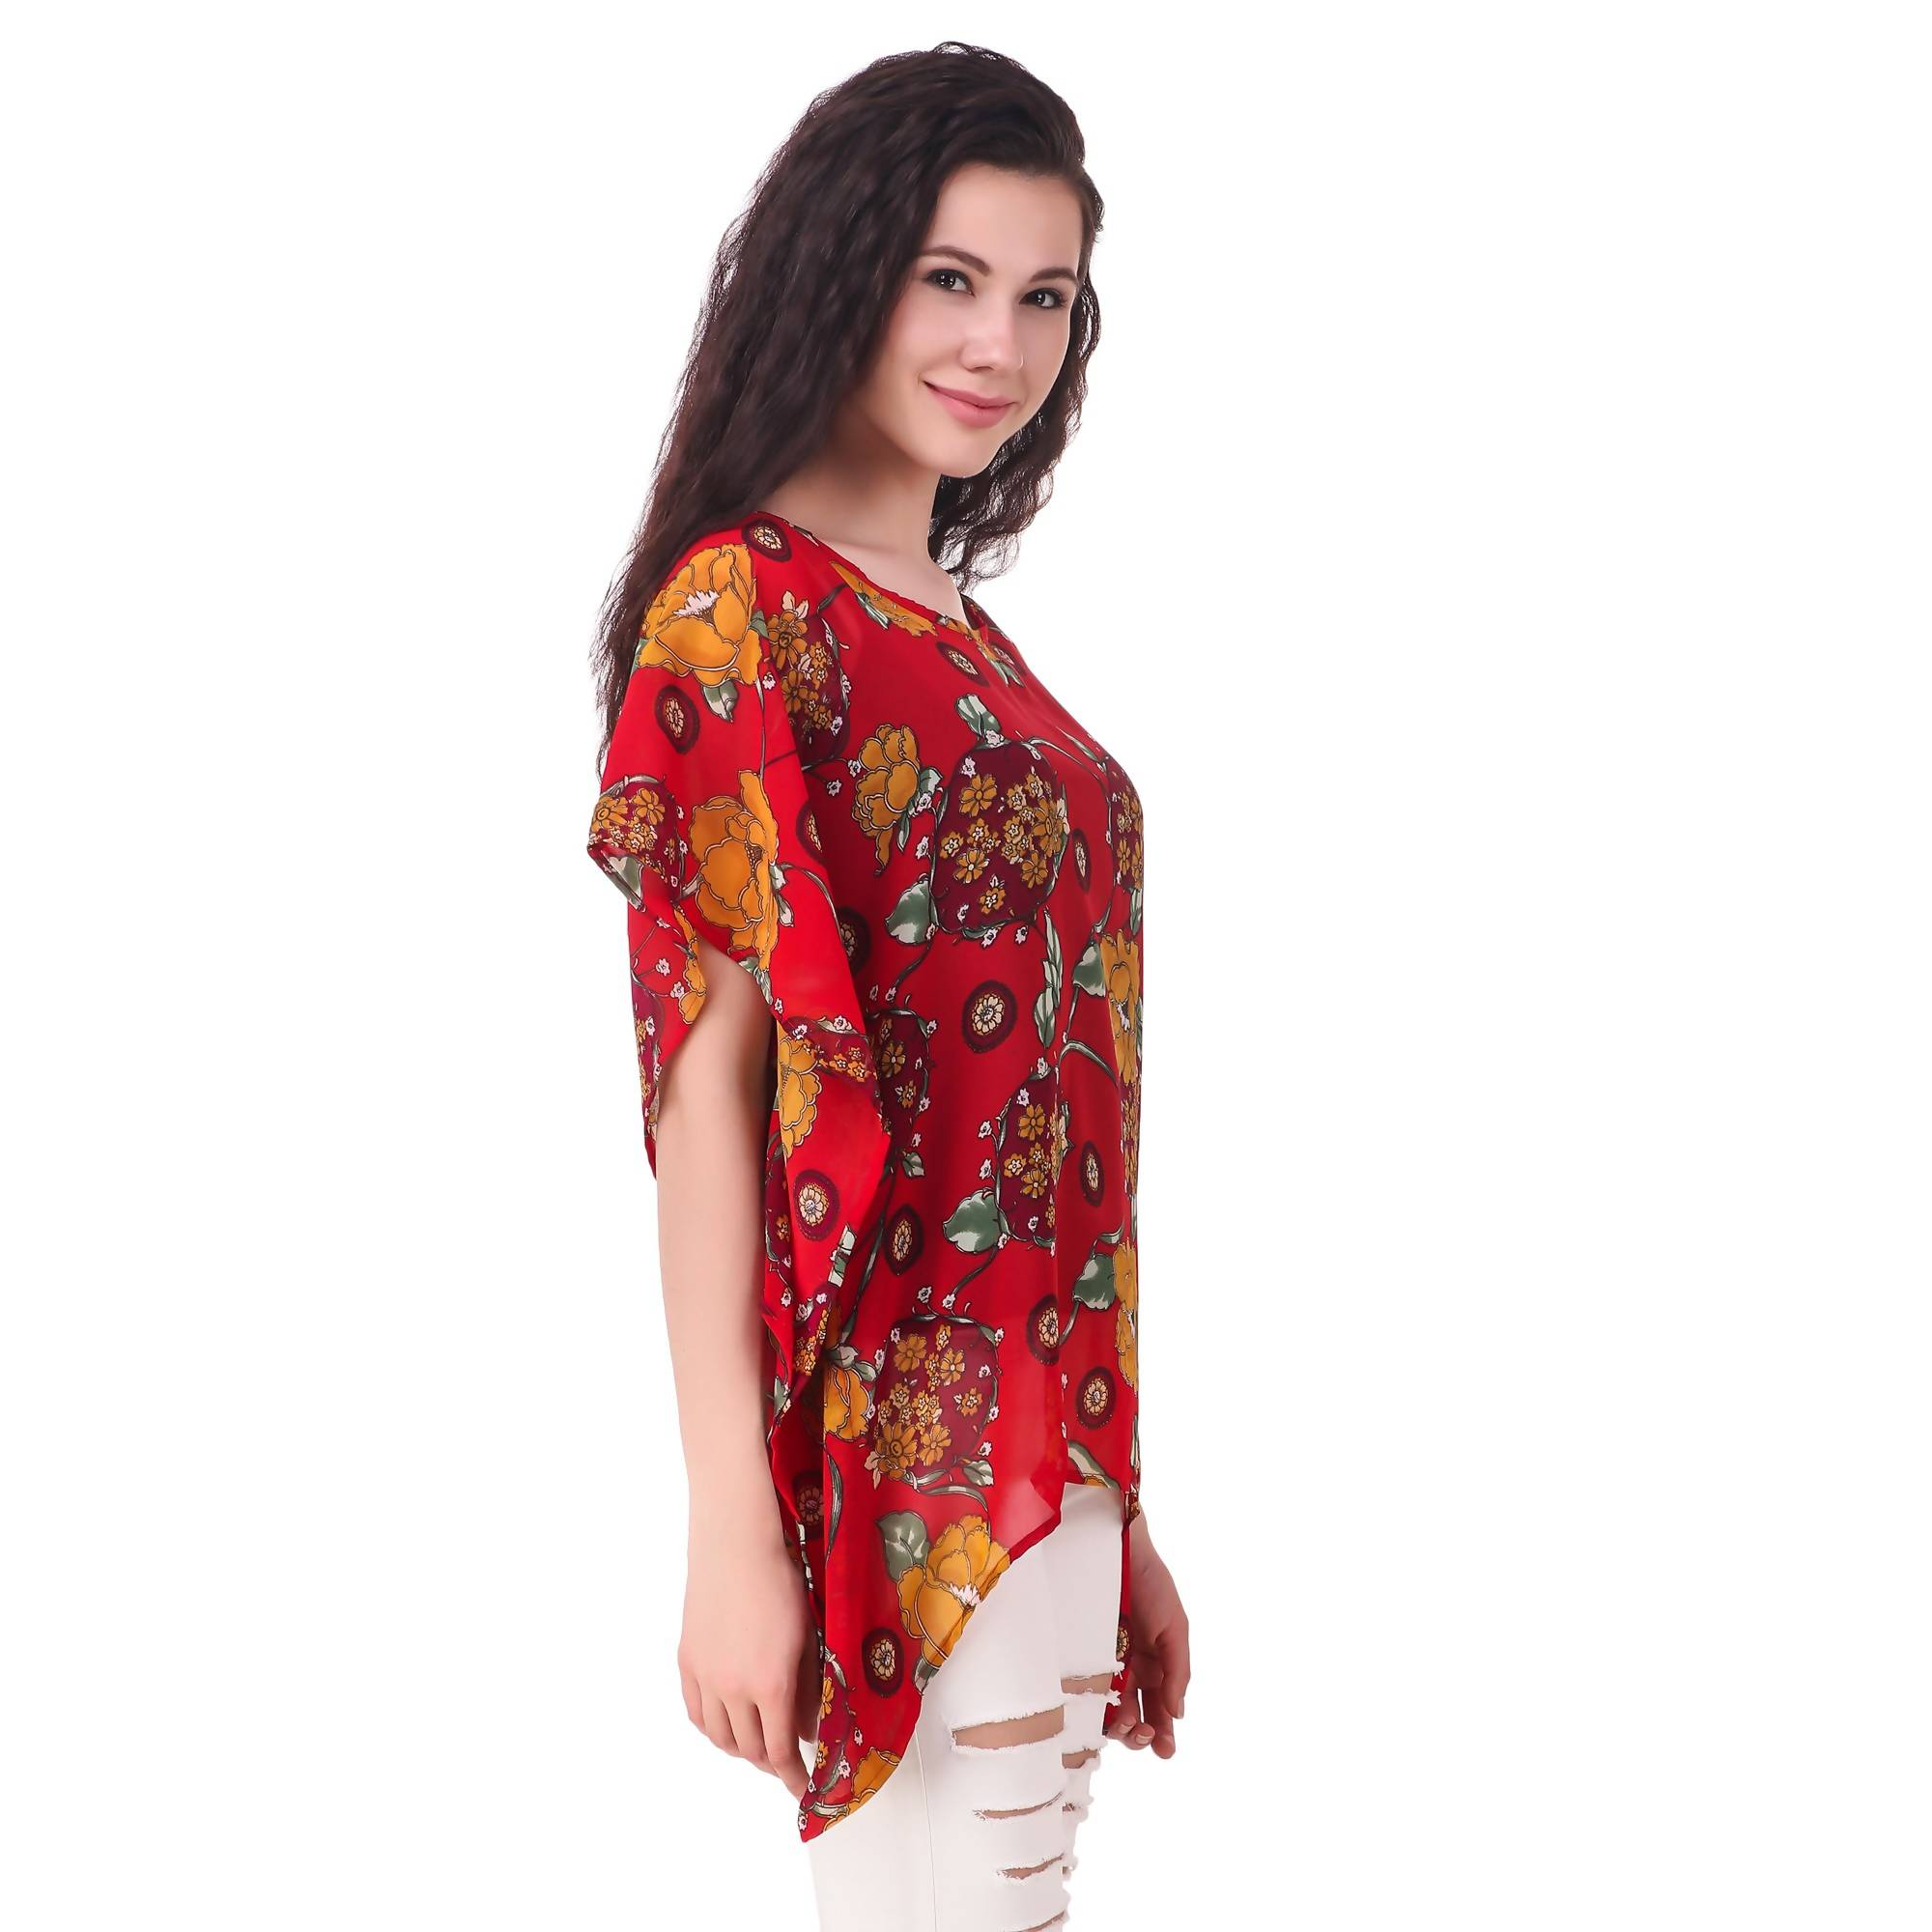 cc0ef0093295 Fame 16 Printed Women'S Round Neck Red Georgette Flared Floral Printed  Kaftans $ F16-1600182 ...